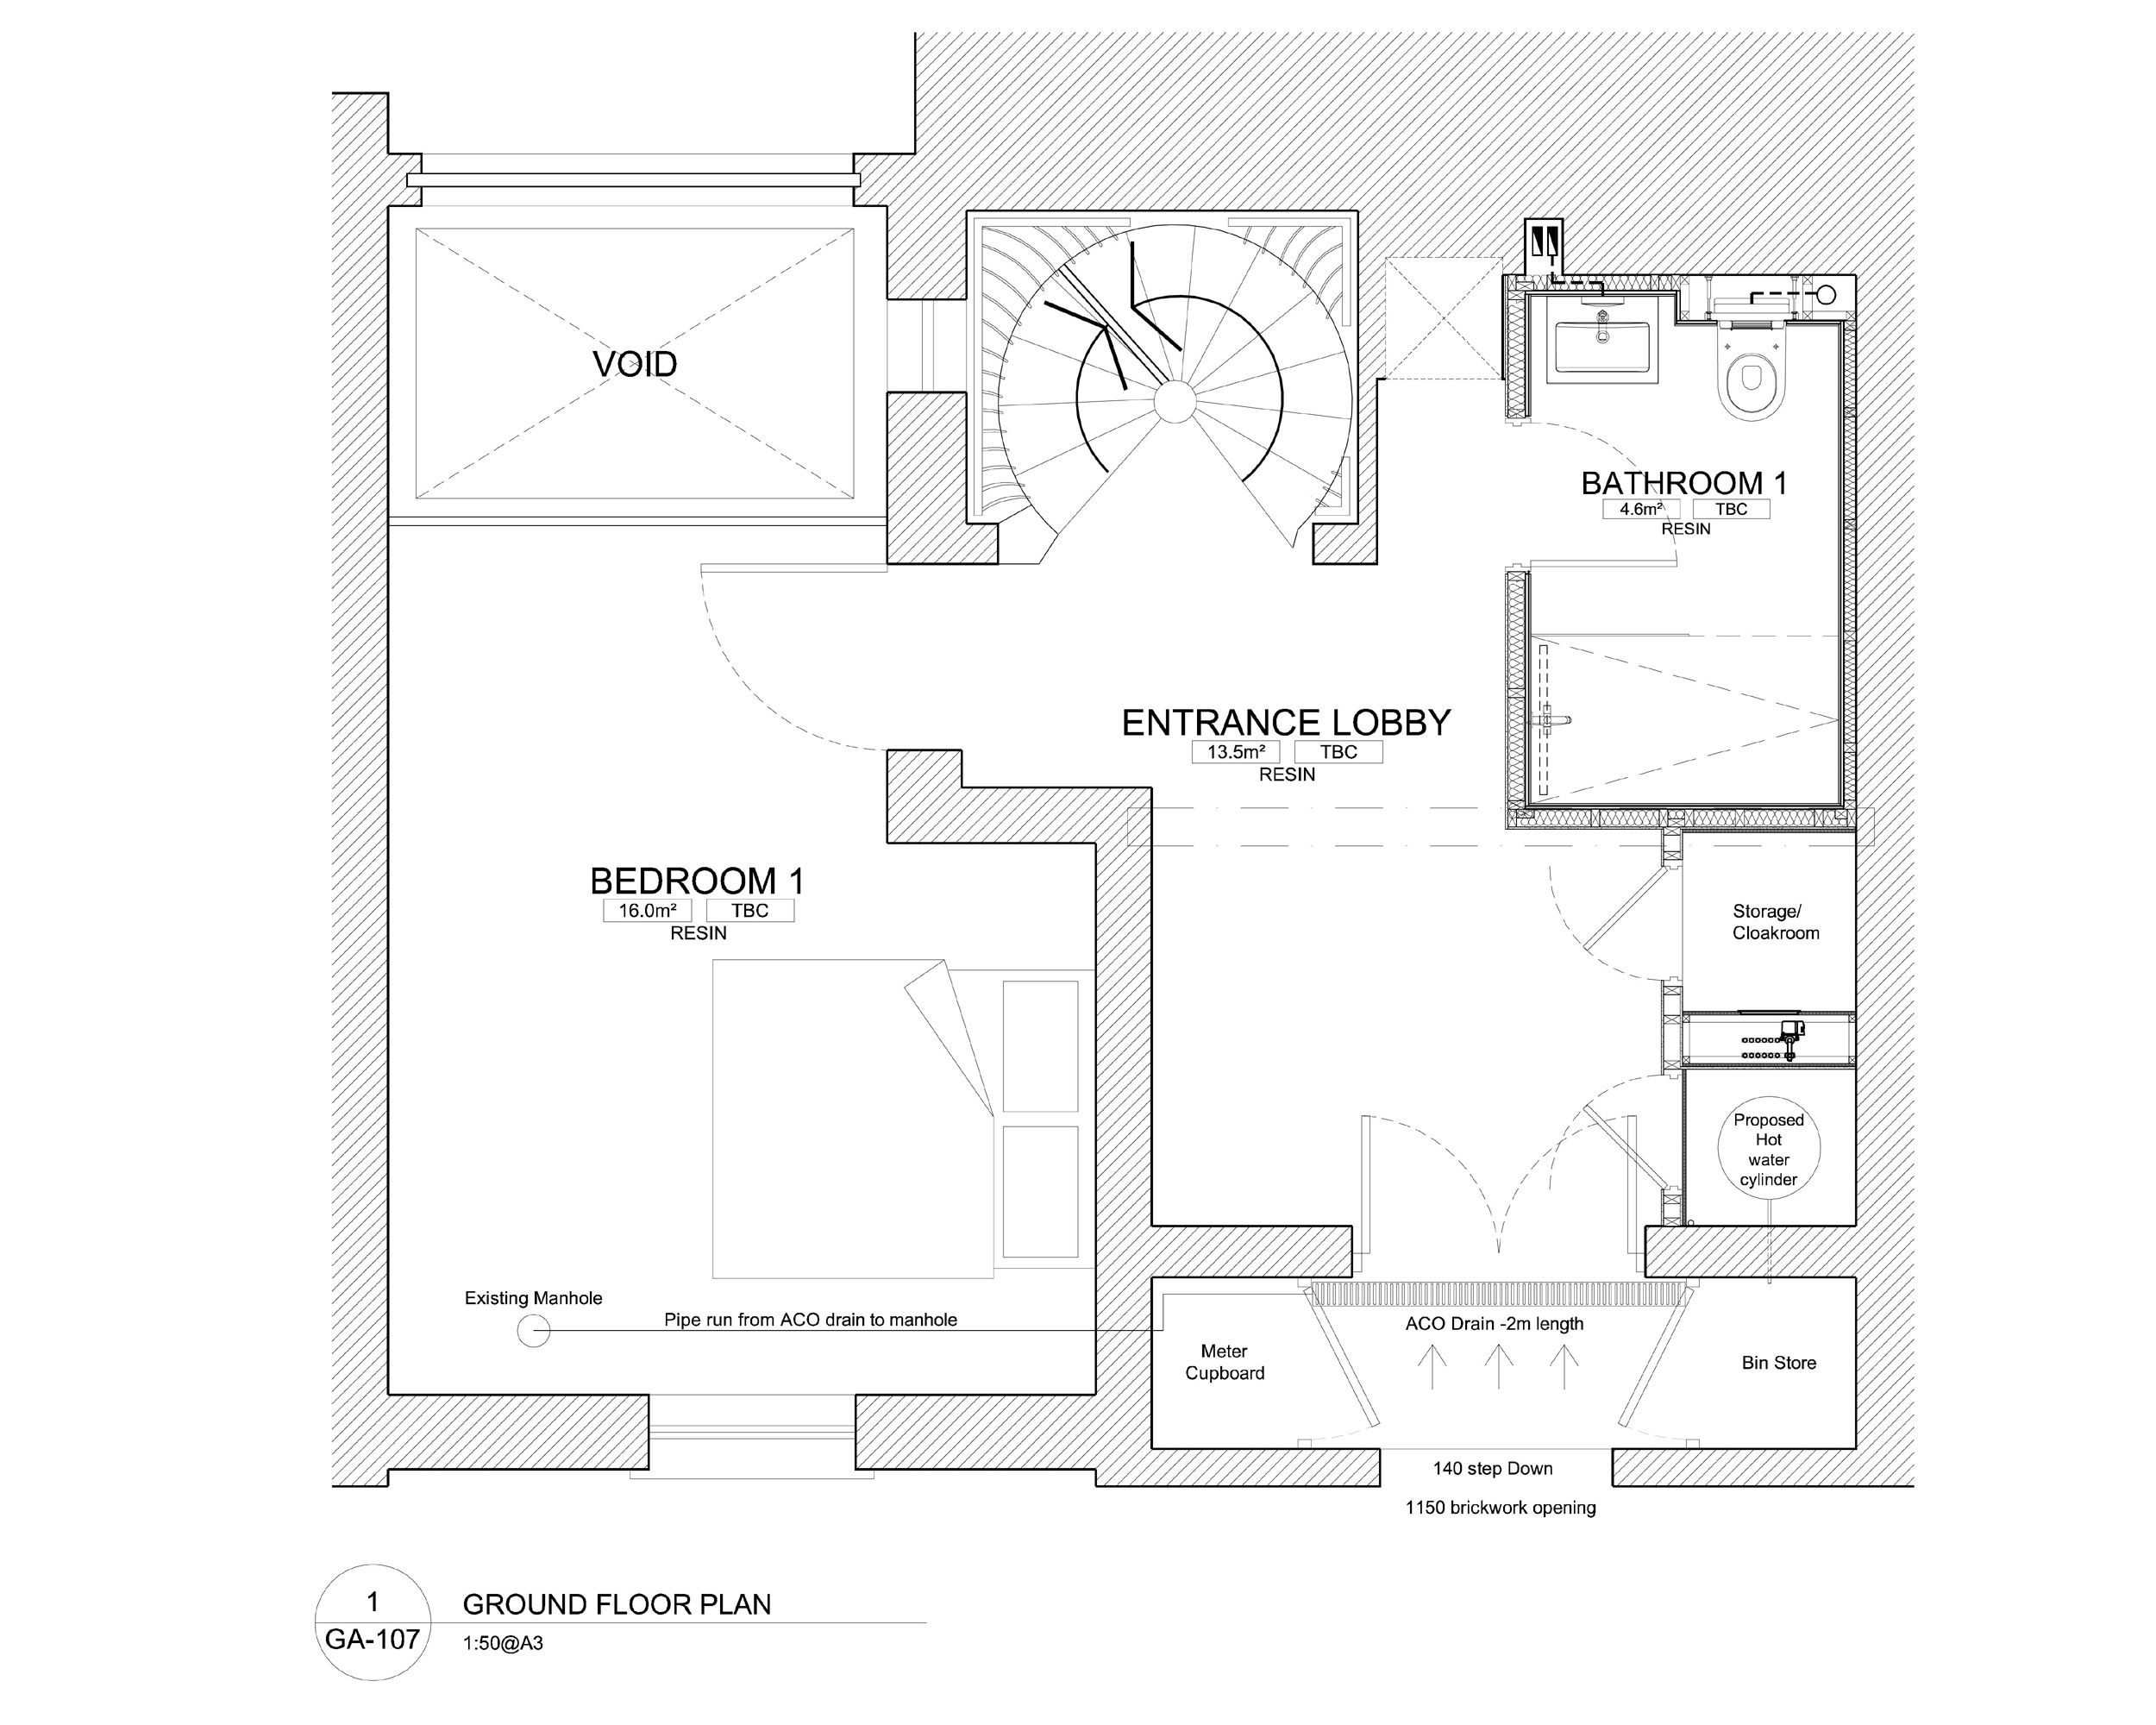 Architectural floor layout at Ladbroke Road property